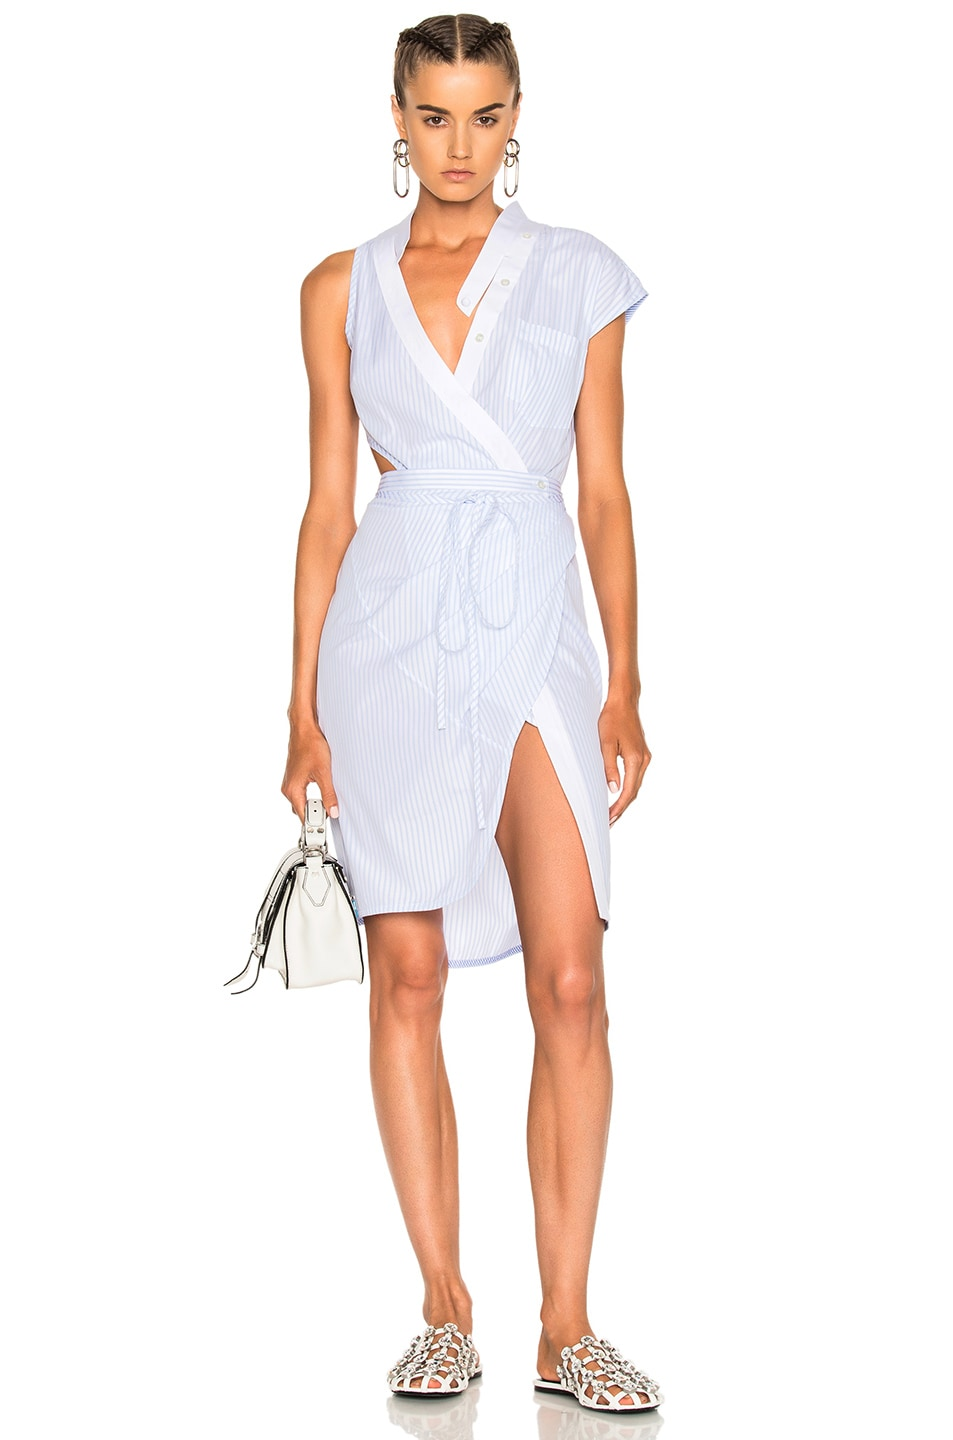 21aa5c3f69 Image 1 of Alexander Wang Asymmetric Deconstructed Shirt Wrap Dress in  Oxford Multi